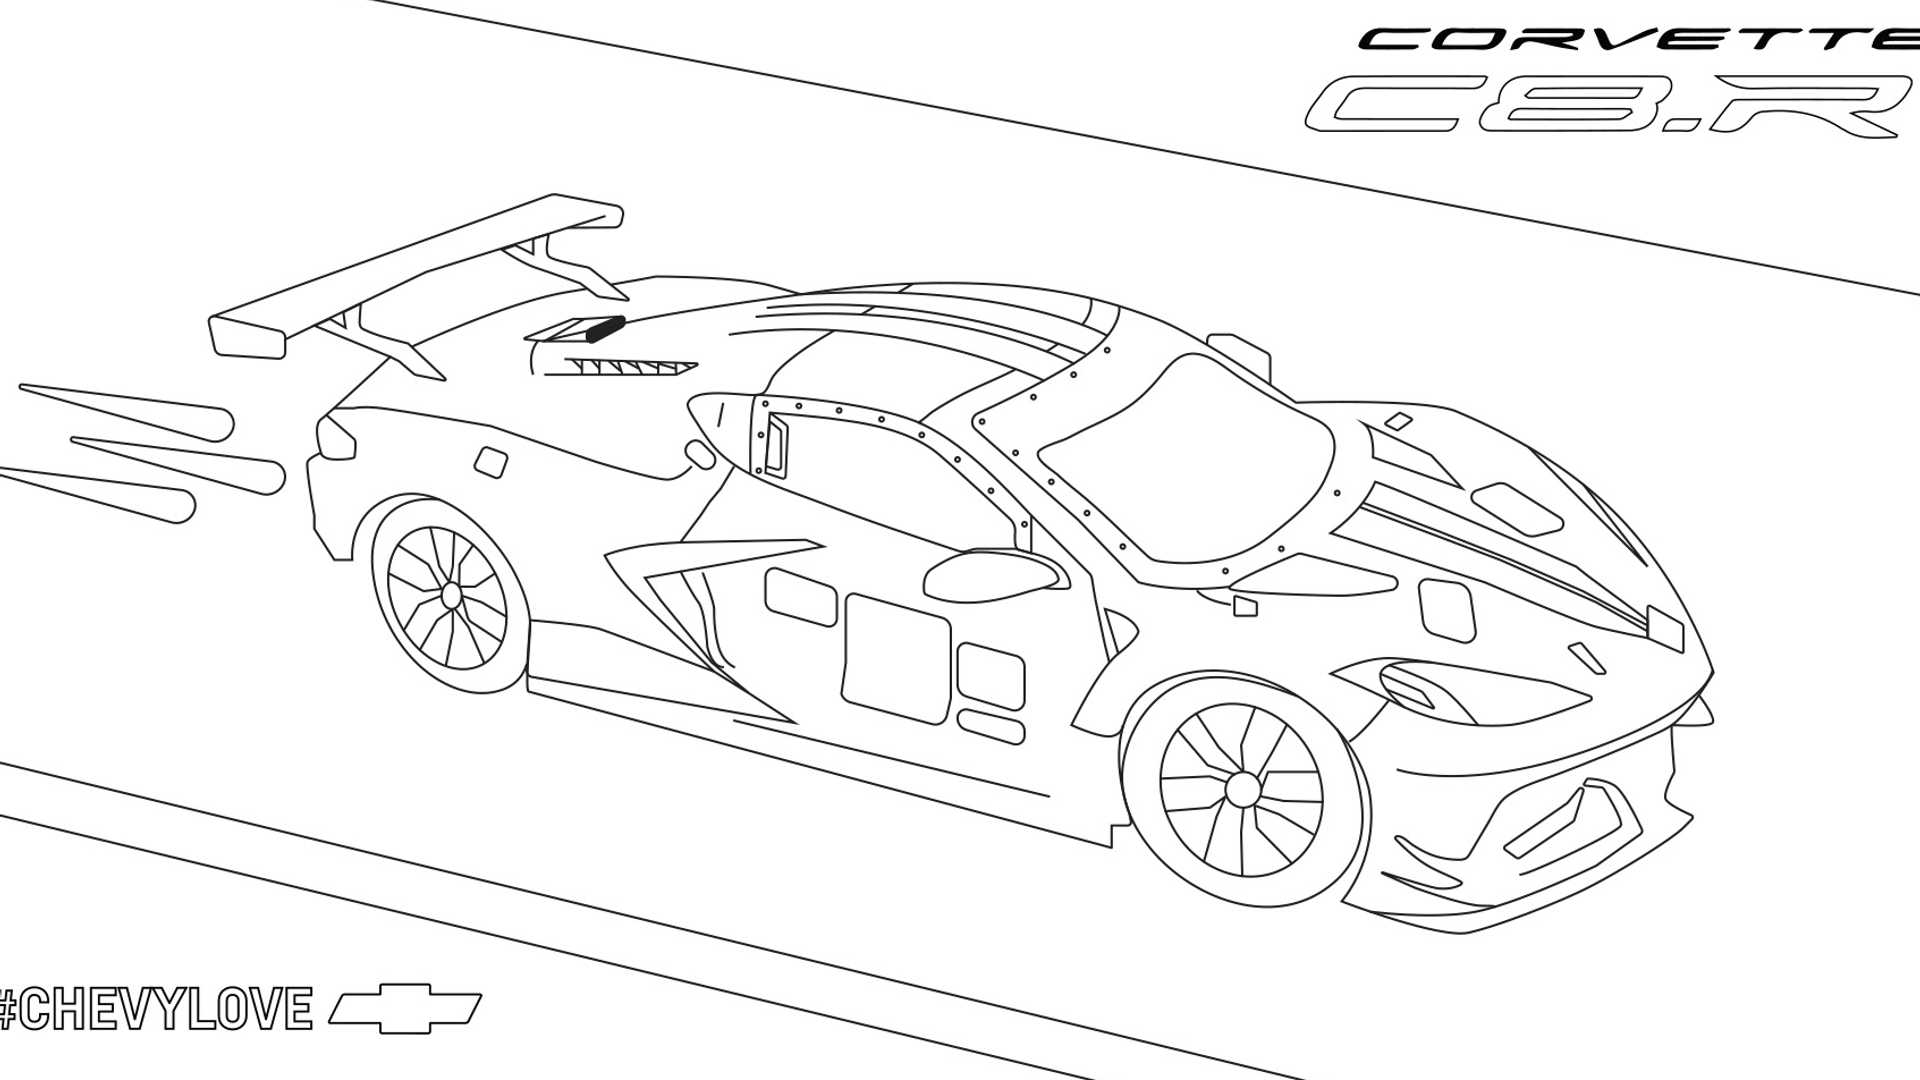 chevy-corvette-coloring-book-pages